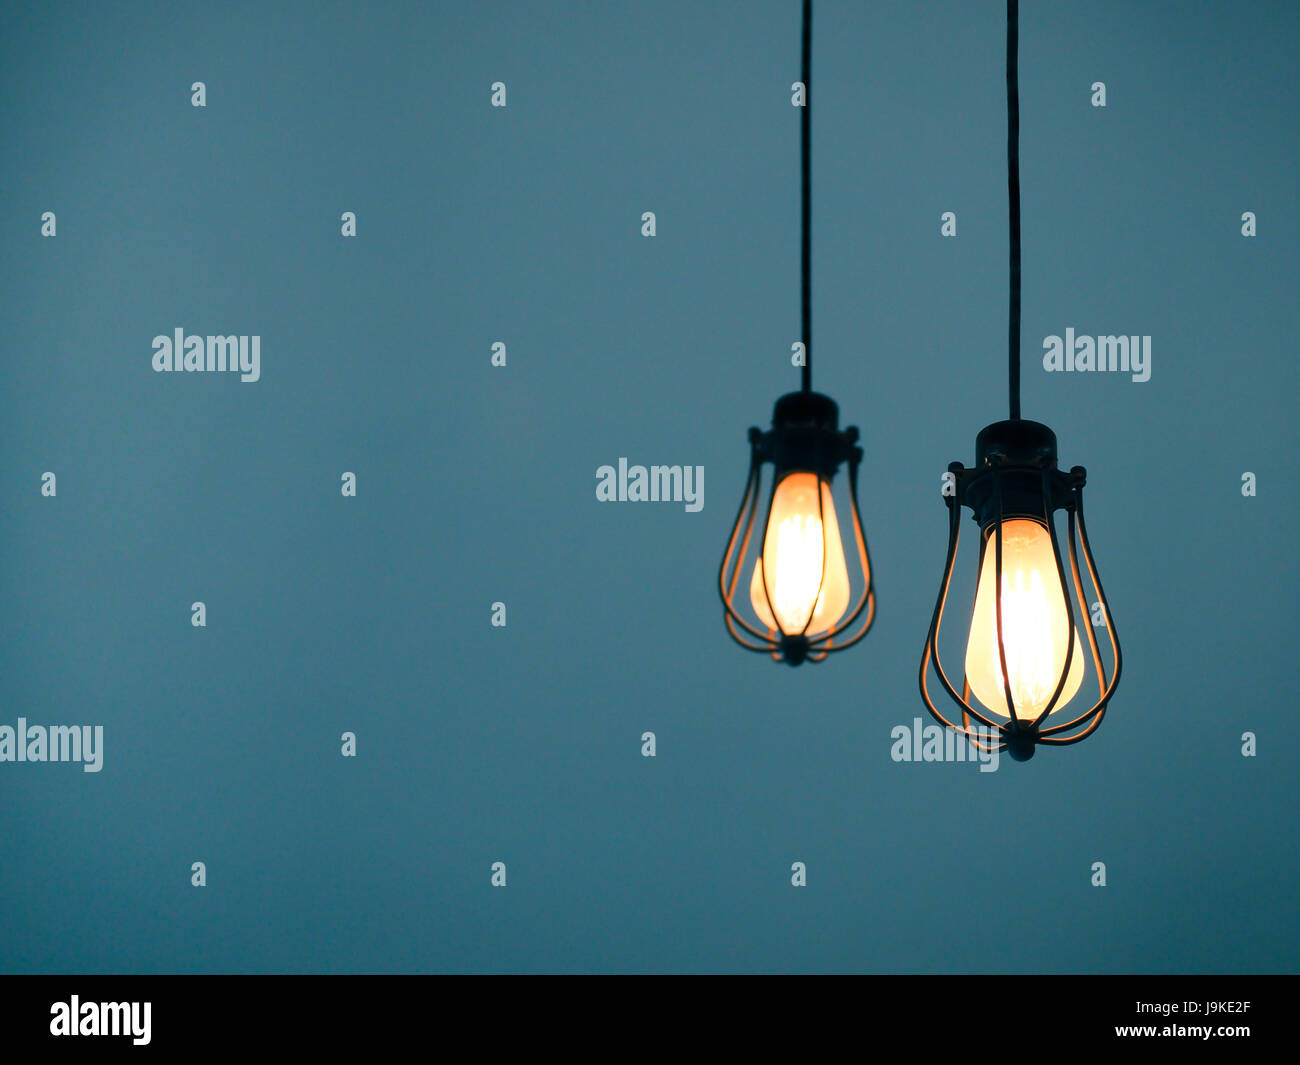 glowing light bulbs on plain background with text space